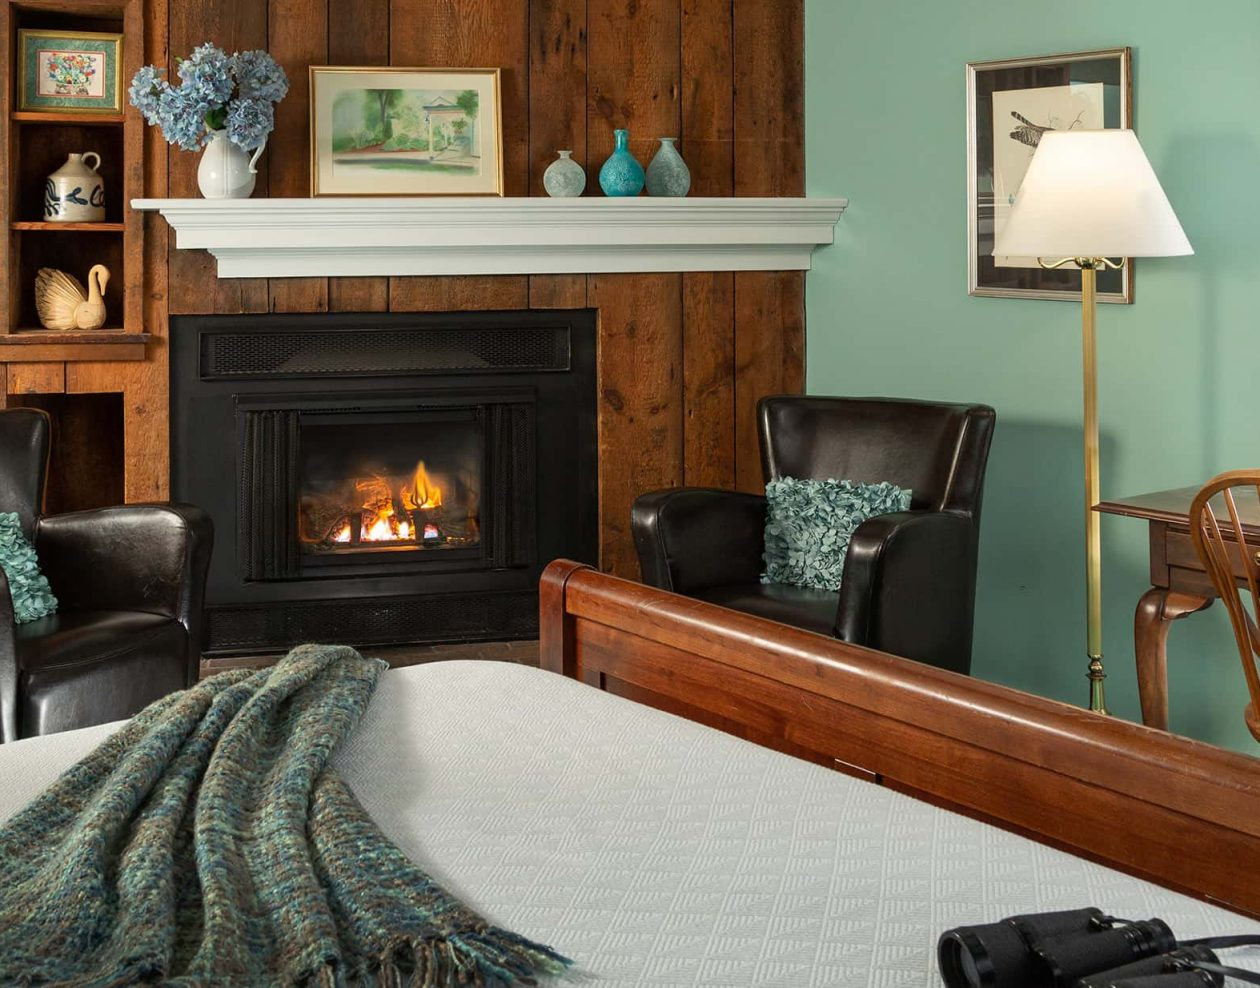 Gas Fireplace with two comfy chairs